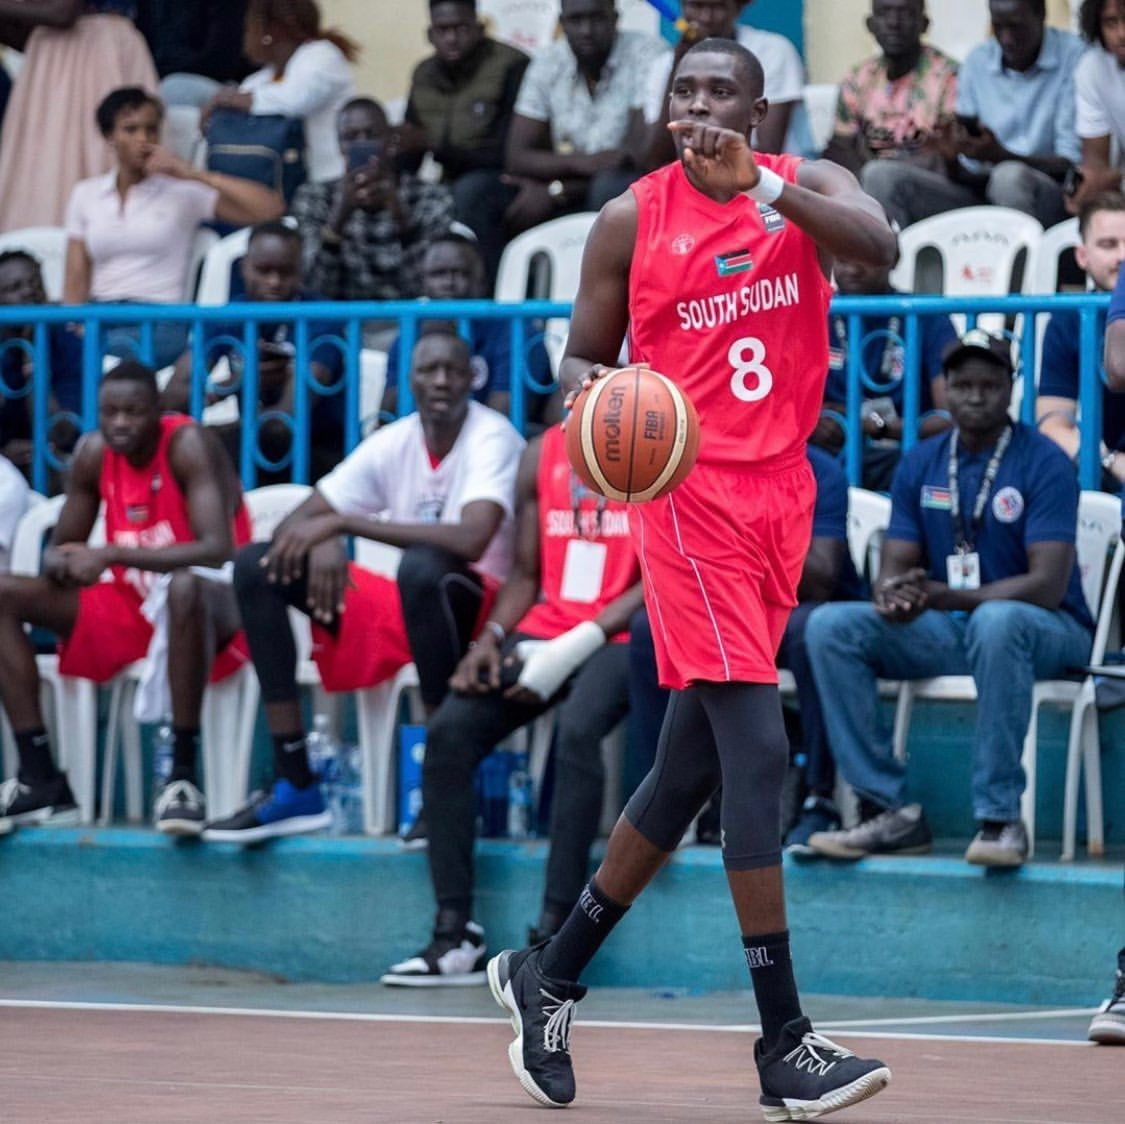 Invest in sports, harness youth talents- Kuany tells government